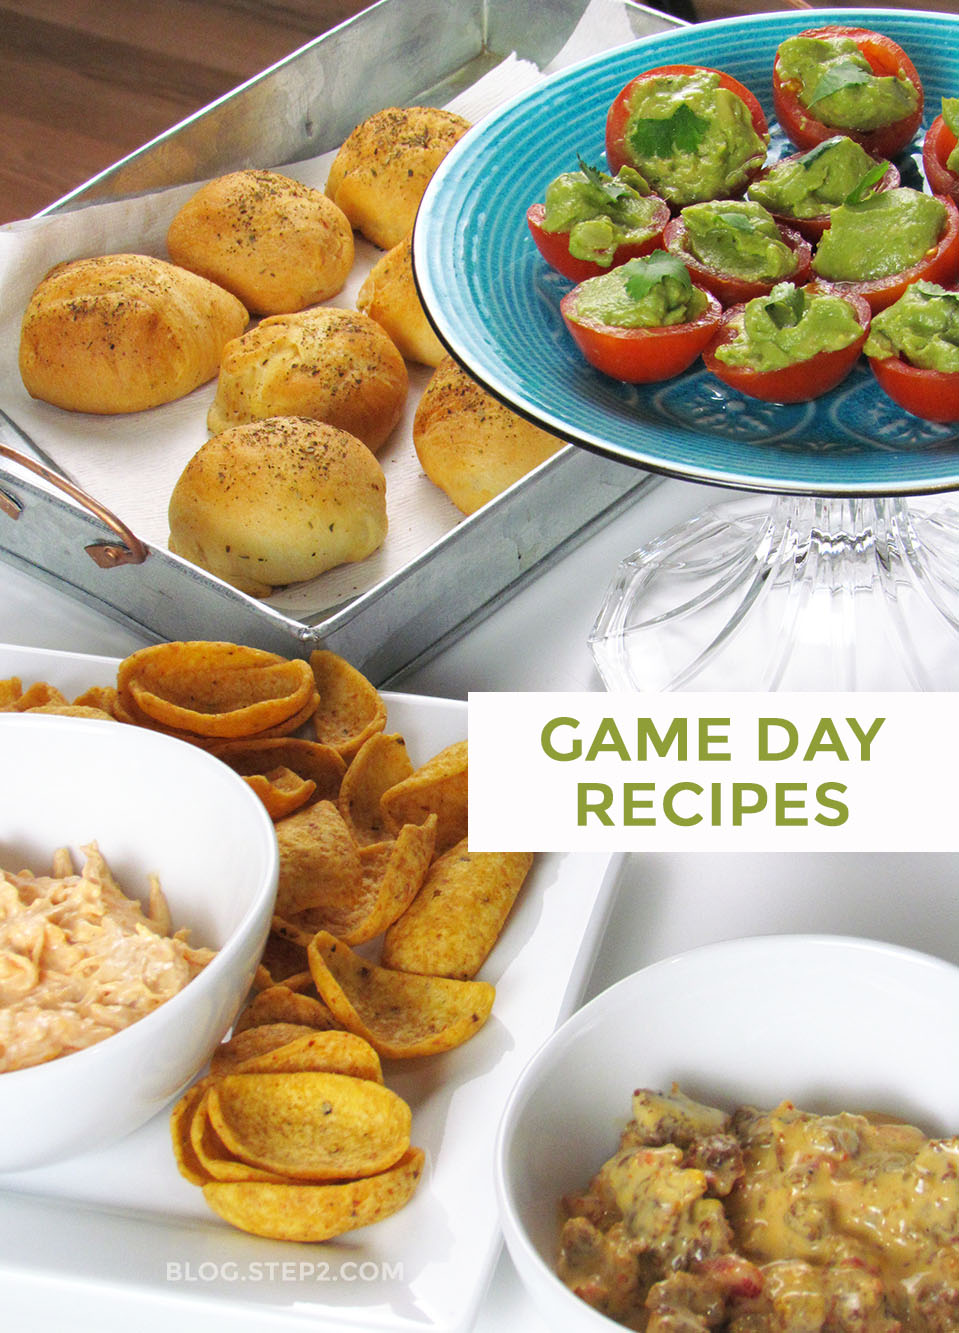 Game Day Super Bowl Party Recipes | Tips from the Step2 Blog